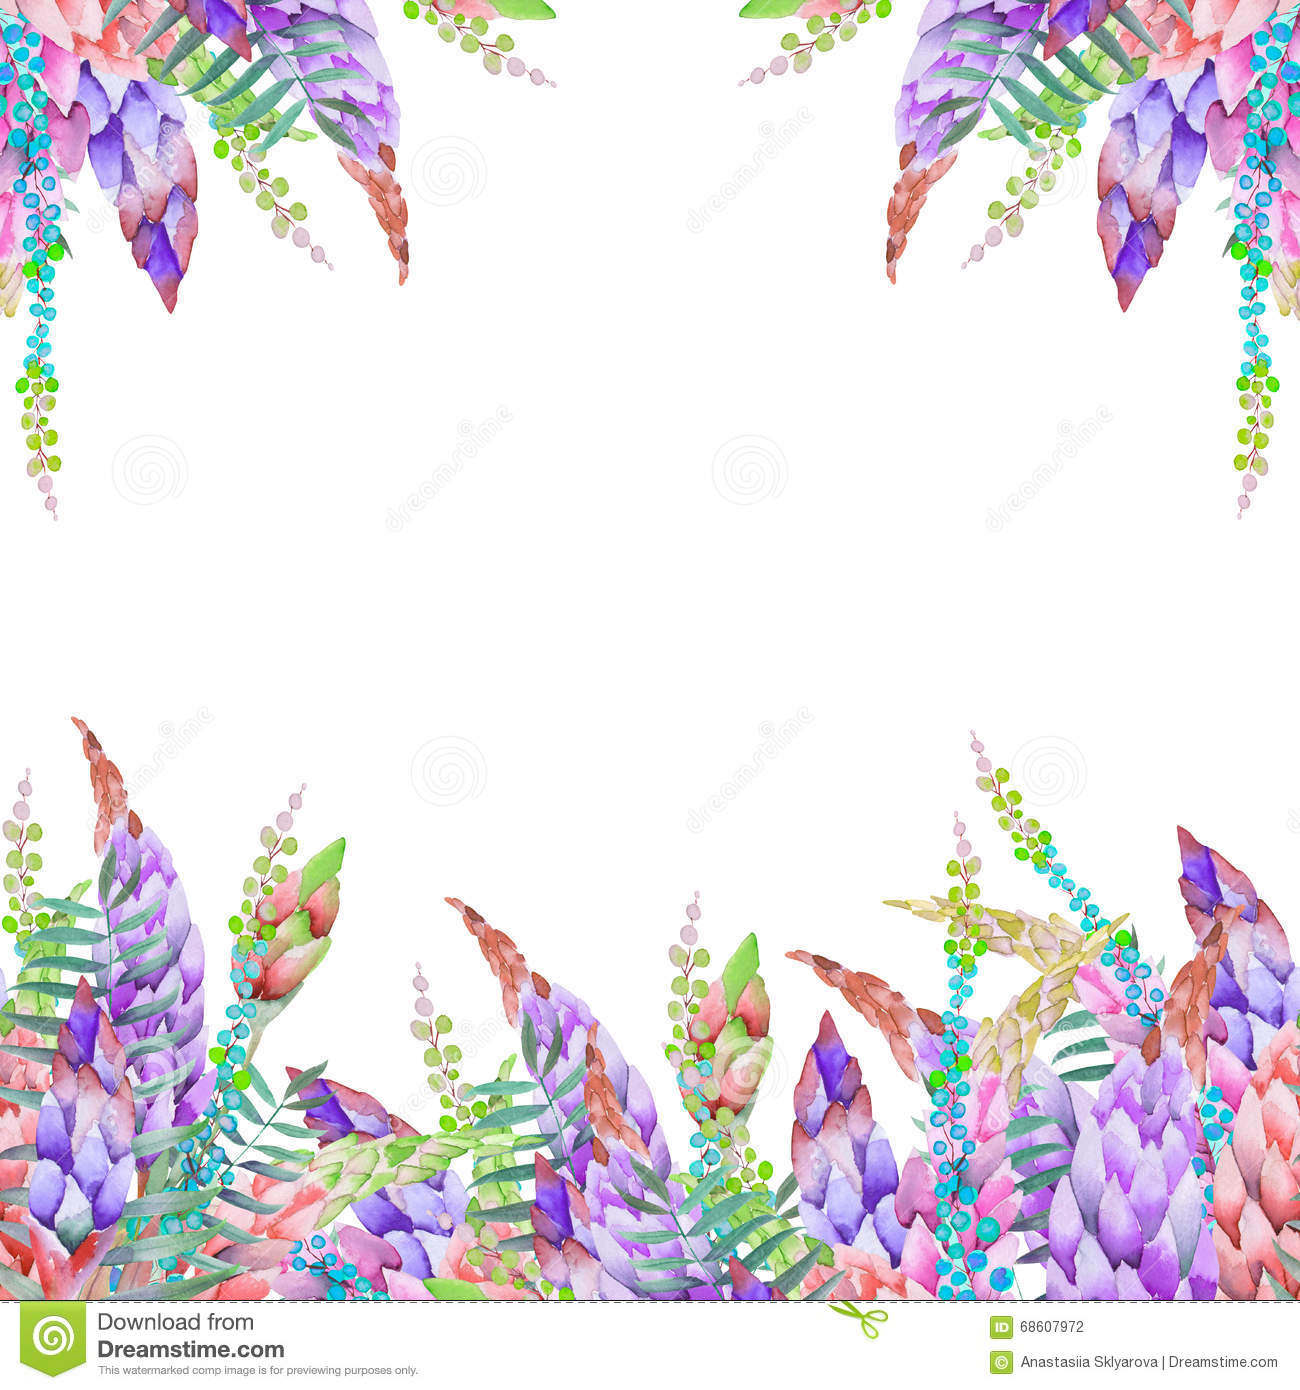 download card template with the floral design watercolor floral elements of a lupine flowers and